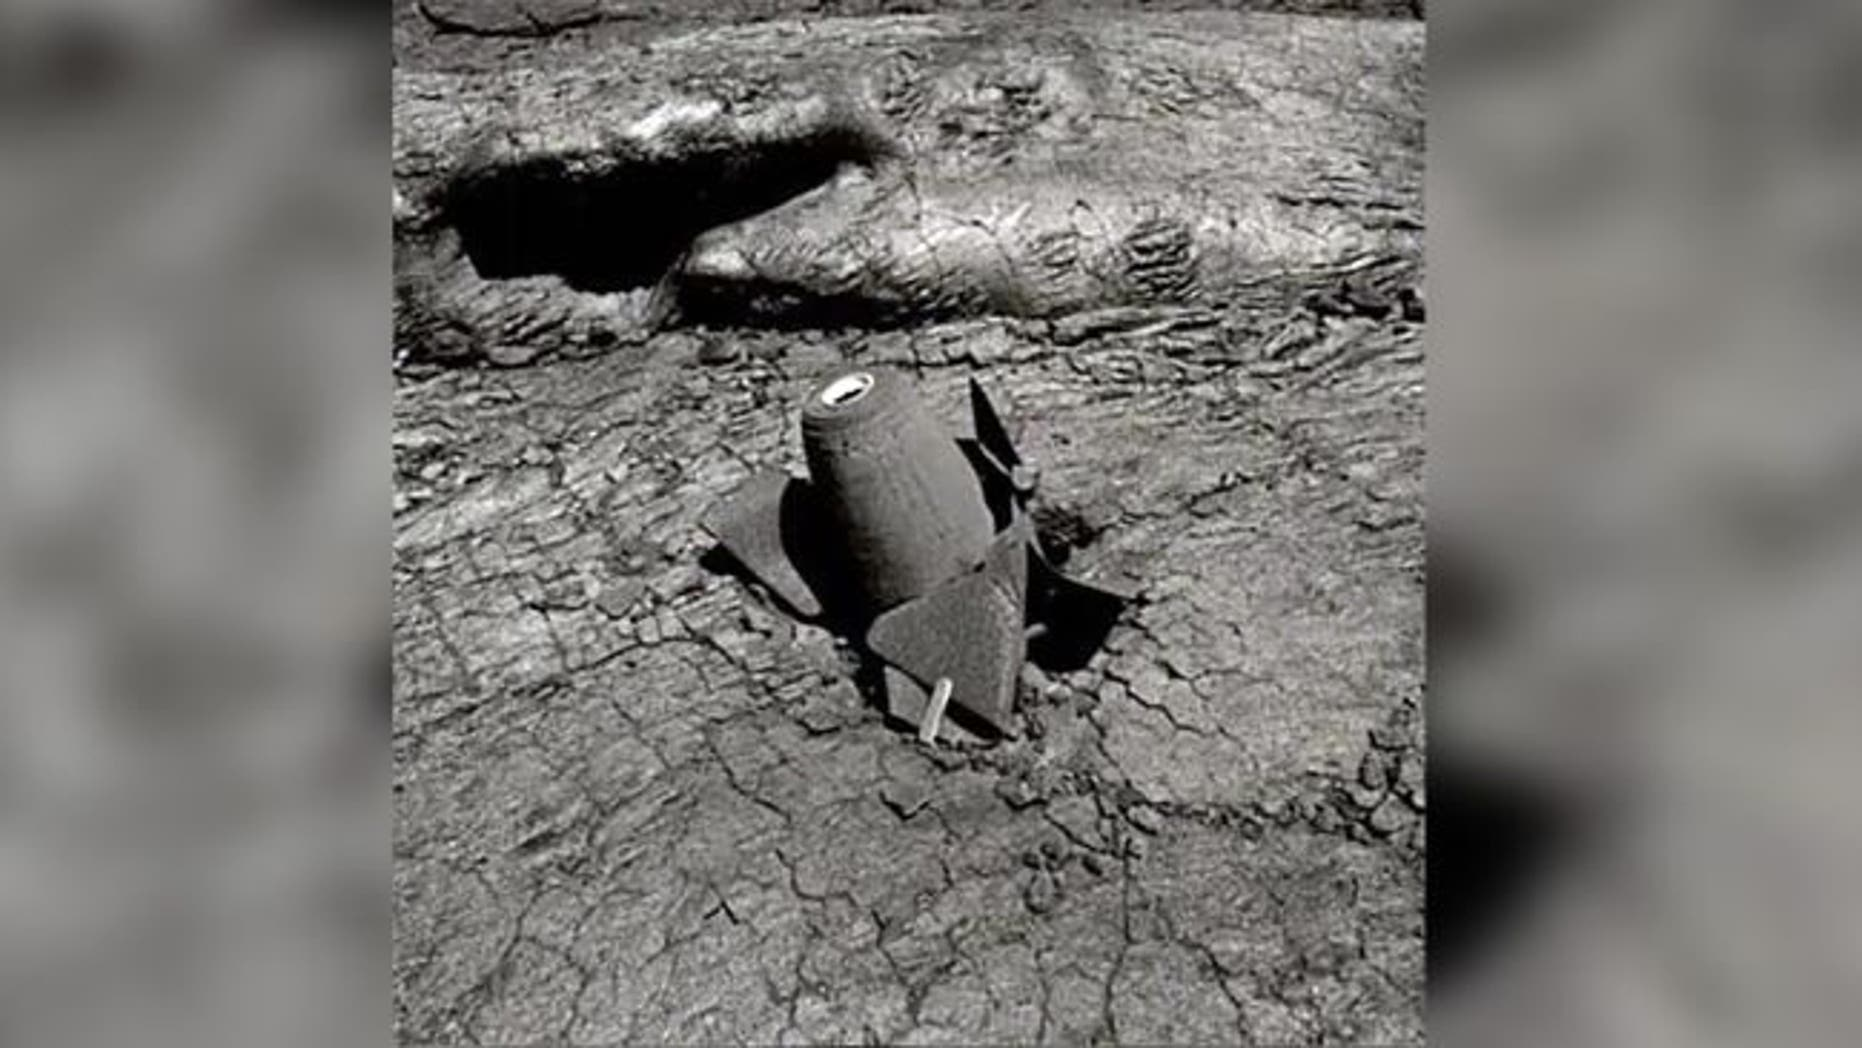 This pointer bomb was dropped into Mauna Loa volcano in 1935 and was photographed in 1977 by Hawaii Volcano Observatory's geologist Jack Lockwood in 1977. (Credit: Jack Lockwood/USGS)